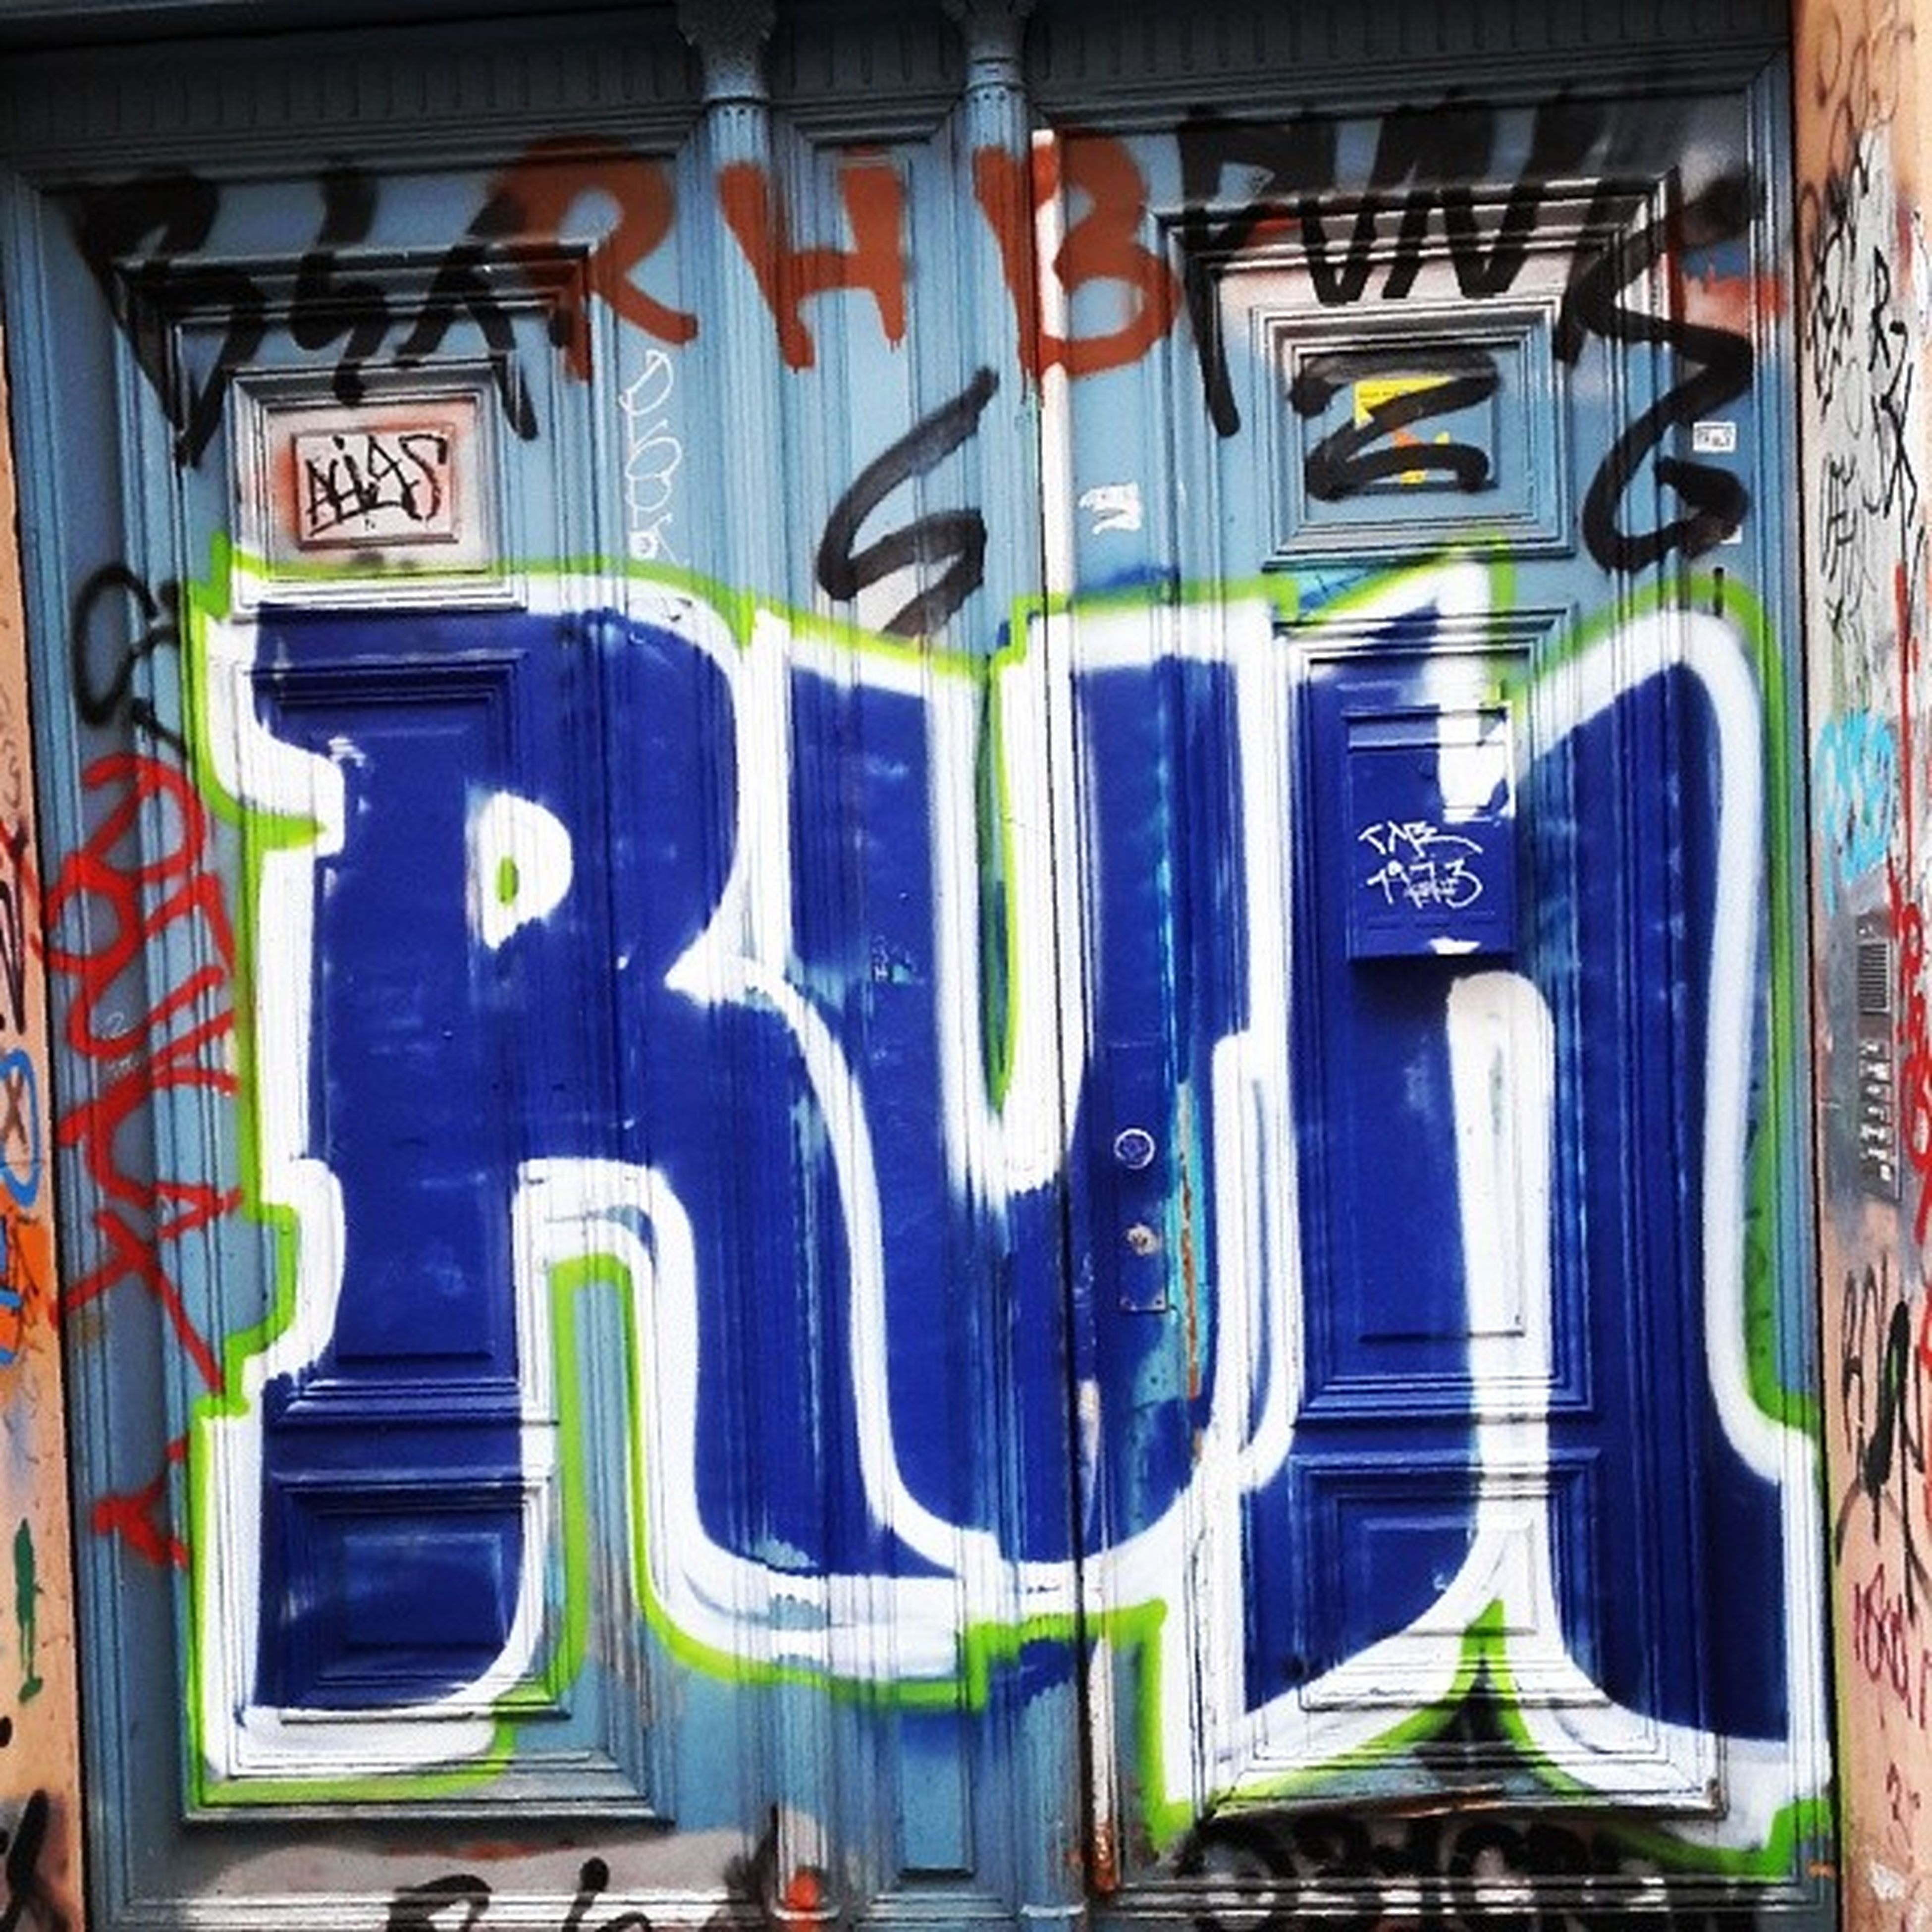 graffiti, art, multi colored, creativity, art and craft, built structure, architecture, wall - building feature, street art, building exterior, human representation, text, colorful, wall, no people, vandalism, mural, day, outdoors, western script